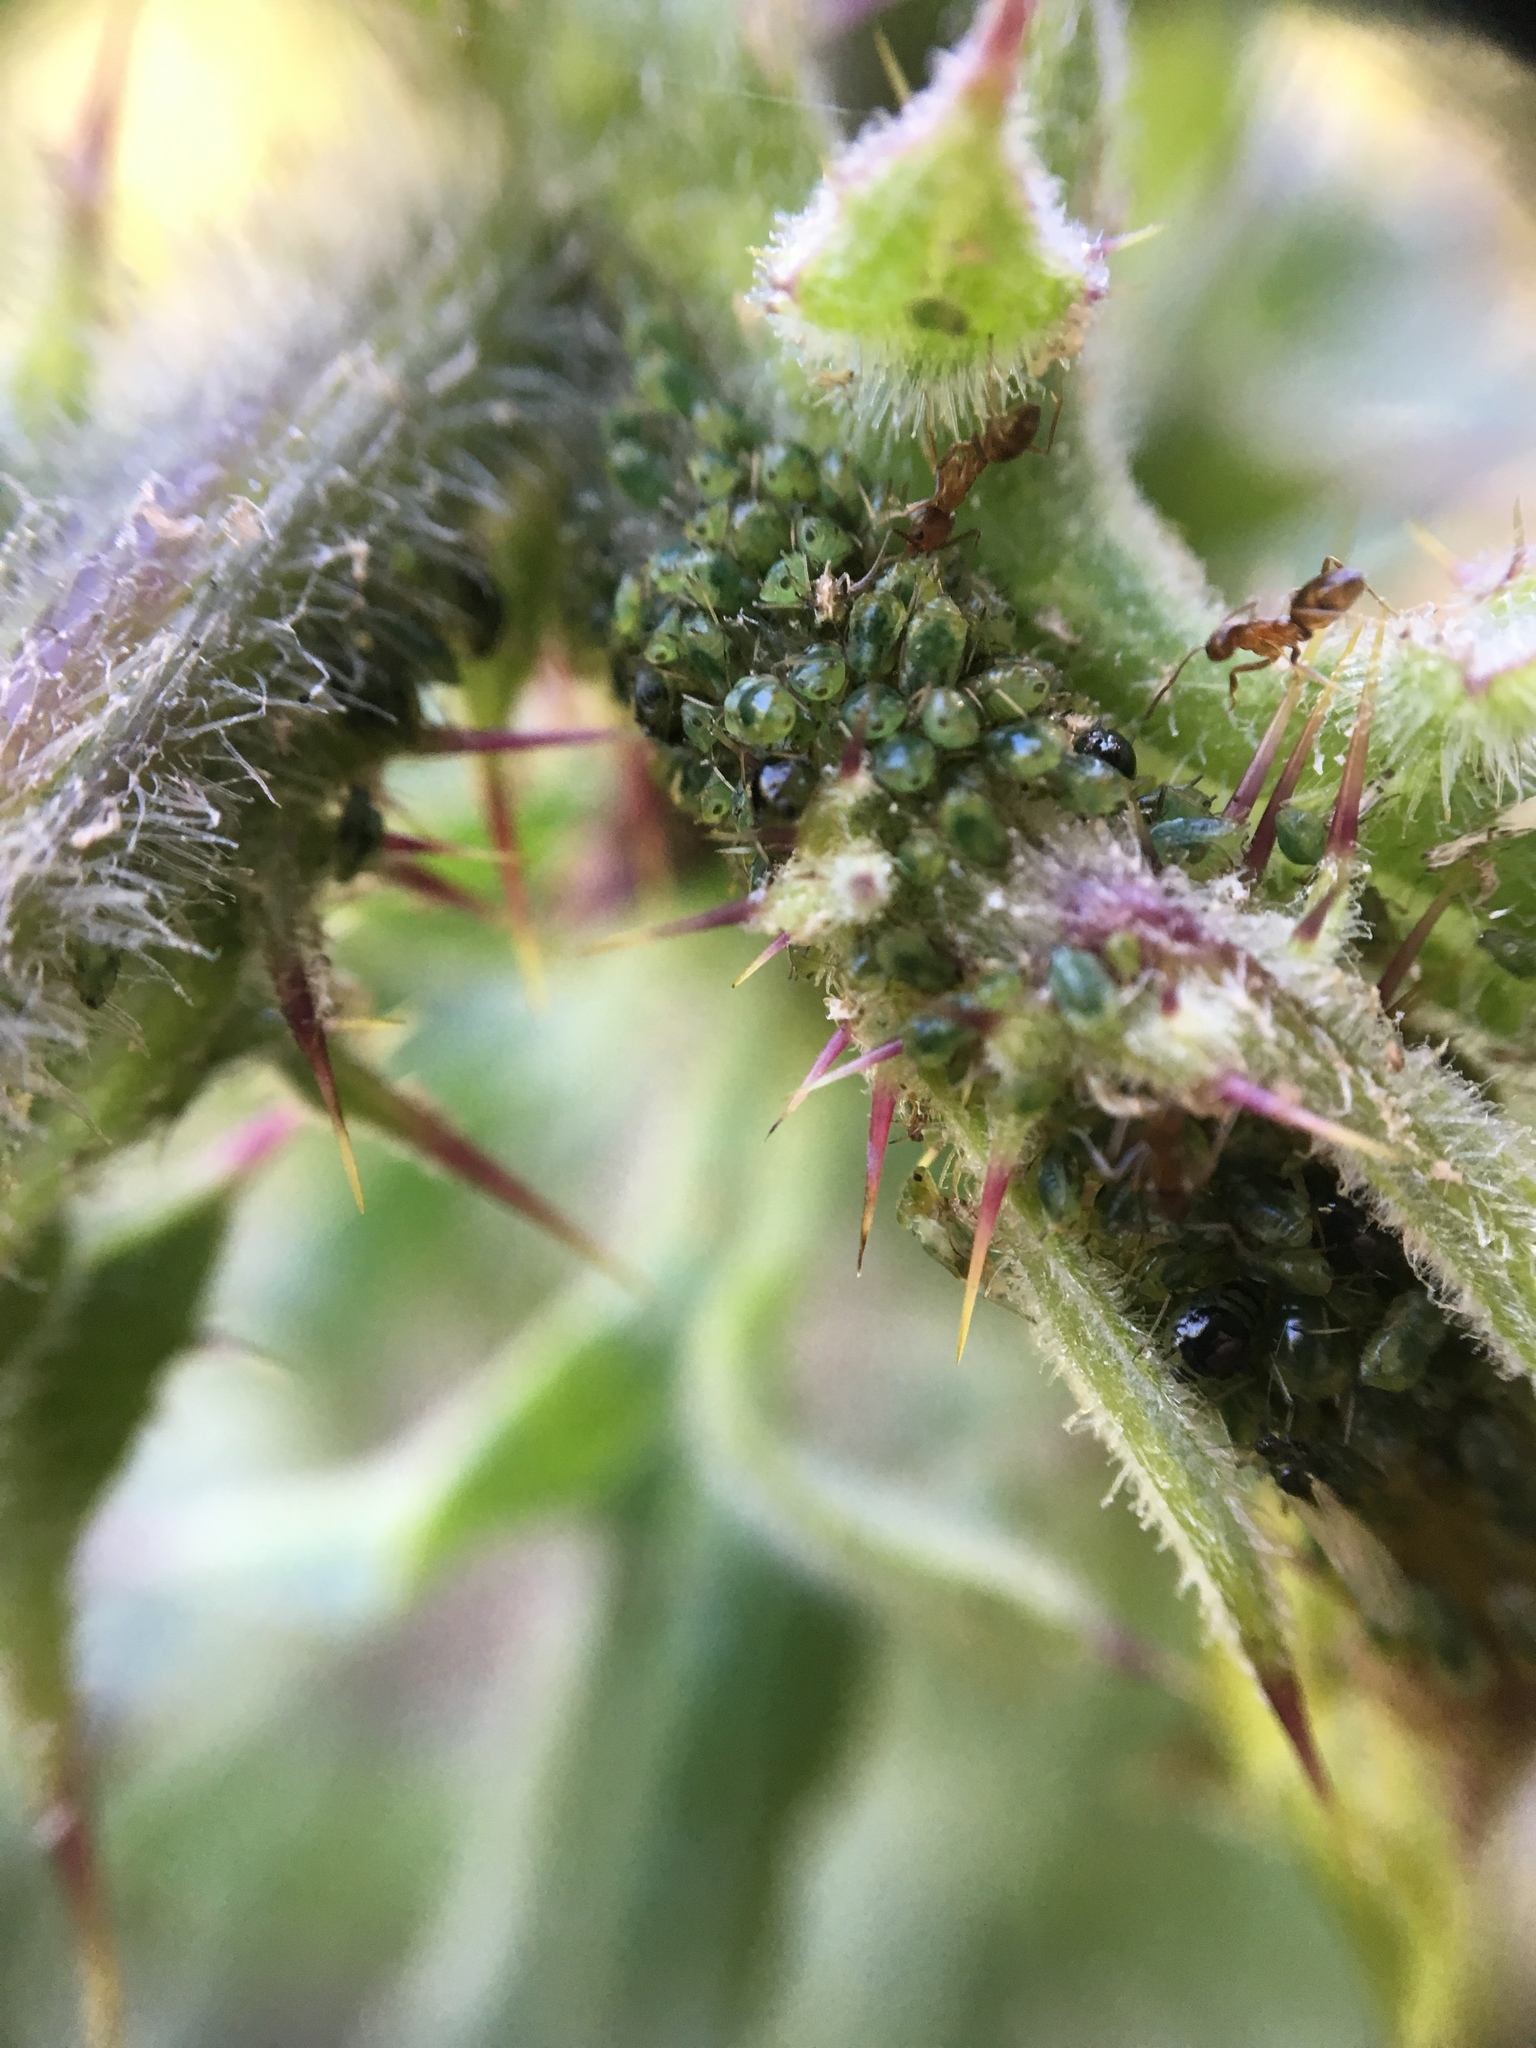 Argentine ants and aphids on a Crystal Springs Fountain thistle in Stulsaft Park